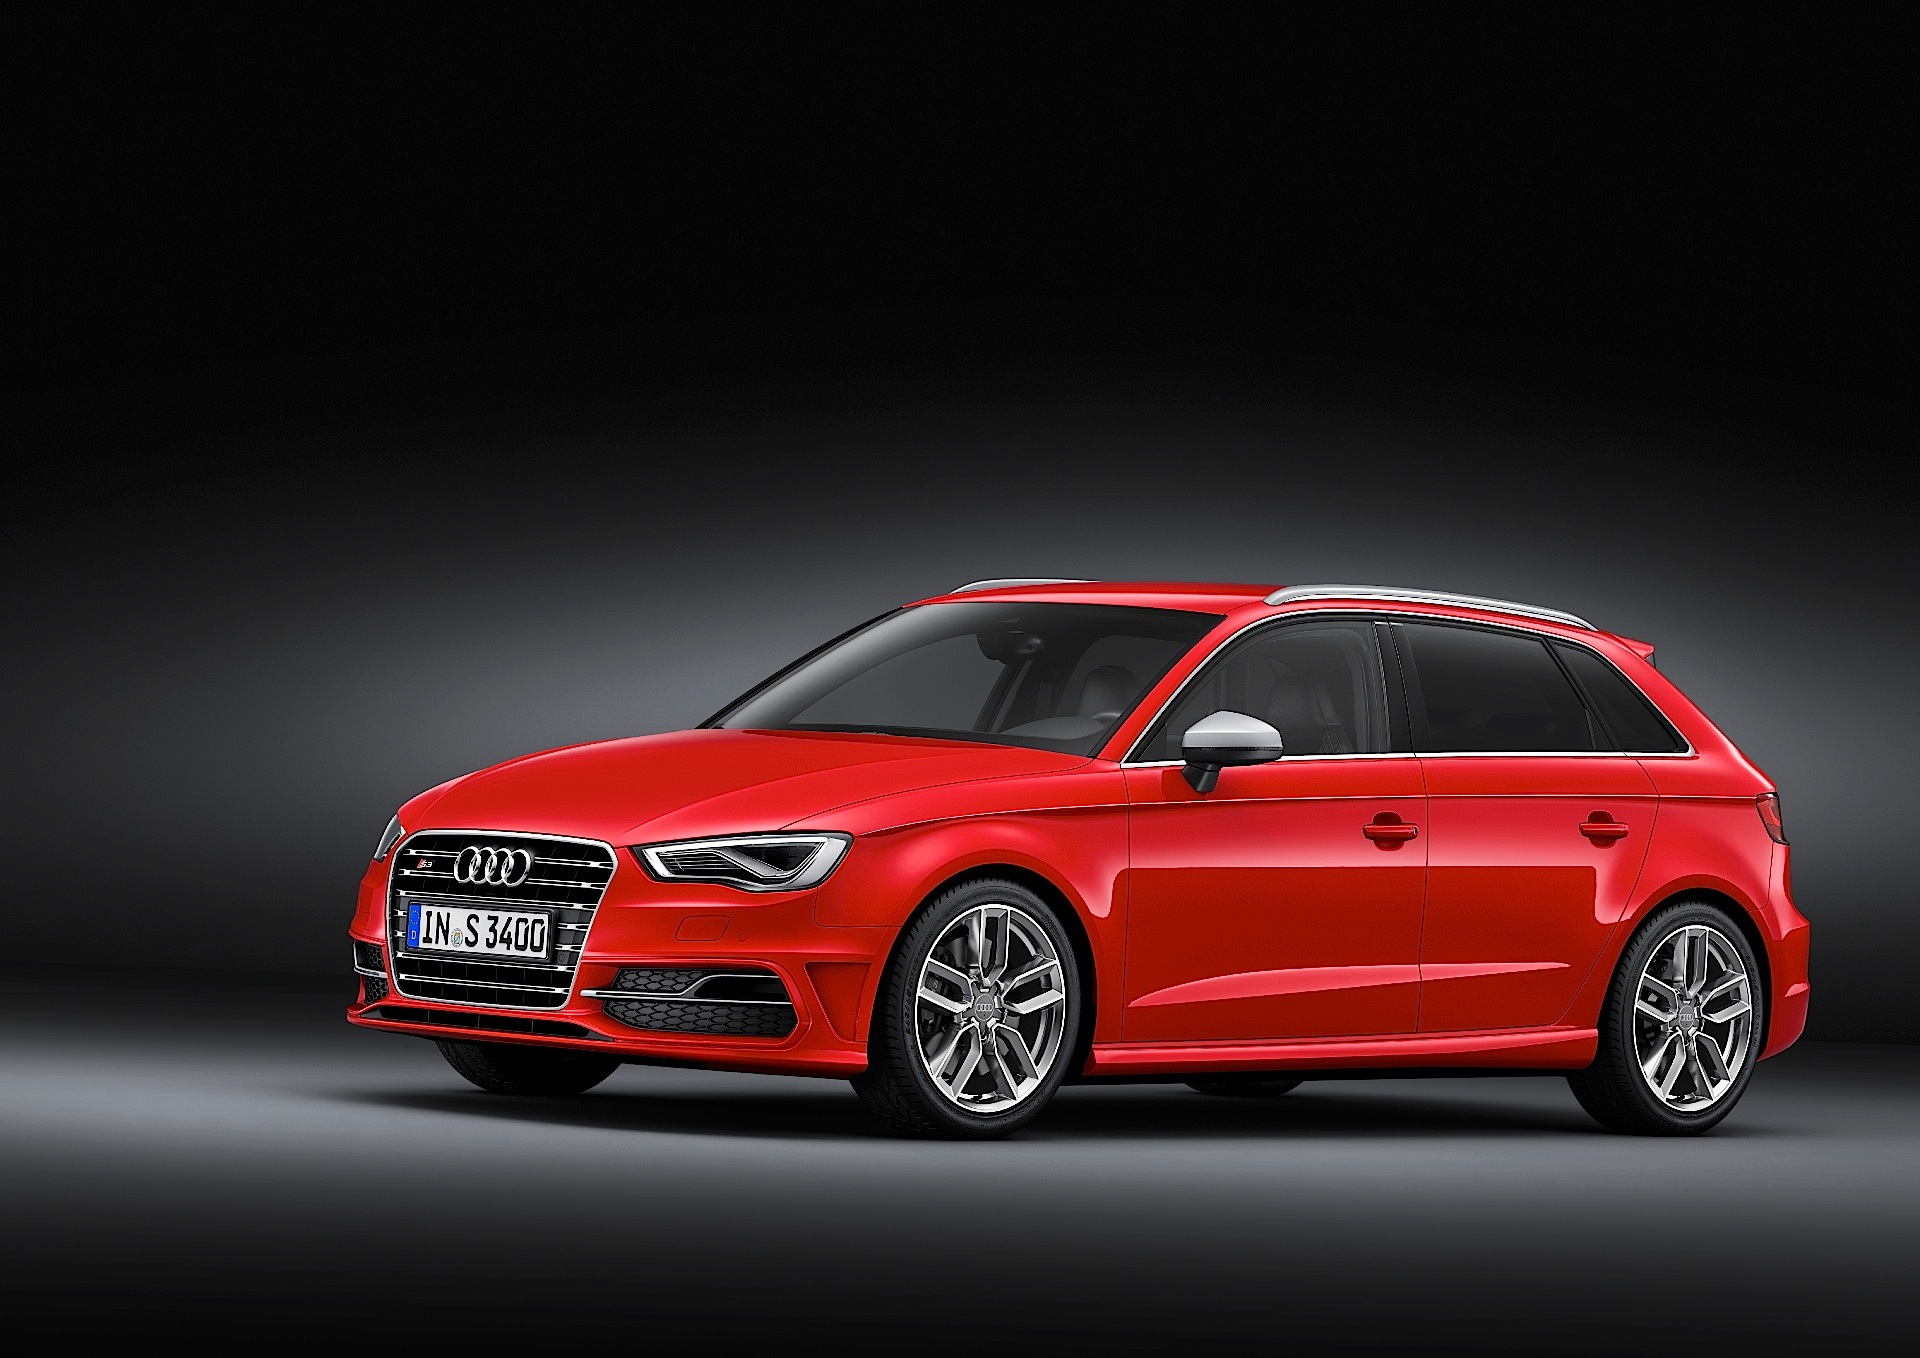 audi s3 sportback specs photos 2013 2014 2015 2016 autoevolution. Black Bedroom Furniture Sets. Home Design Ideas